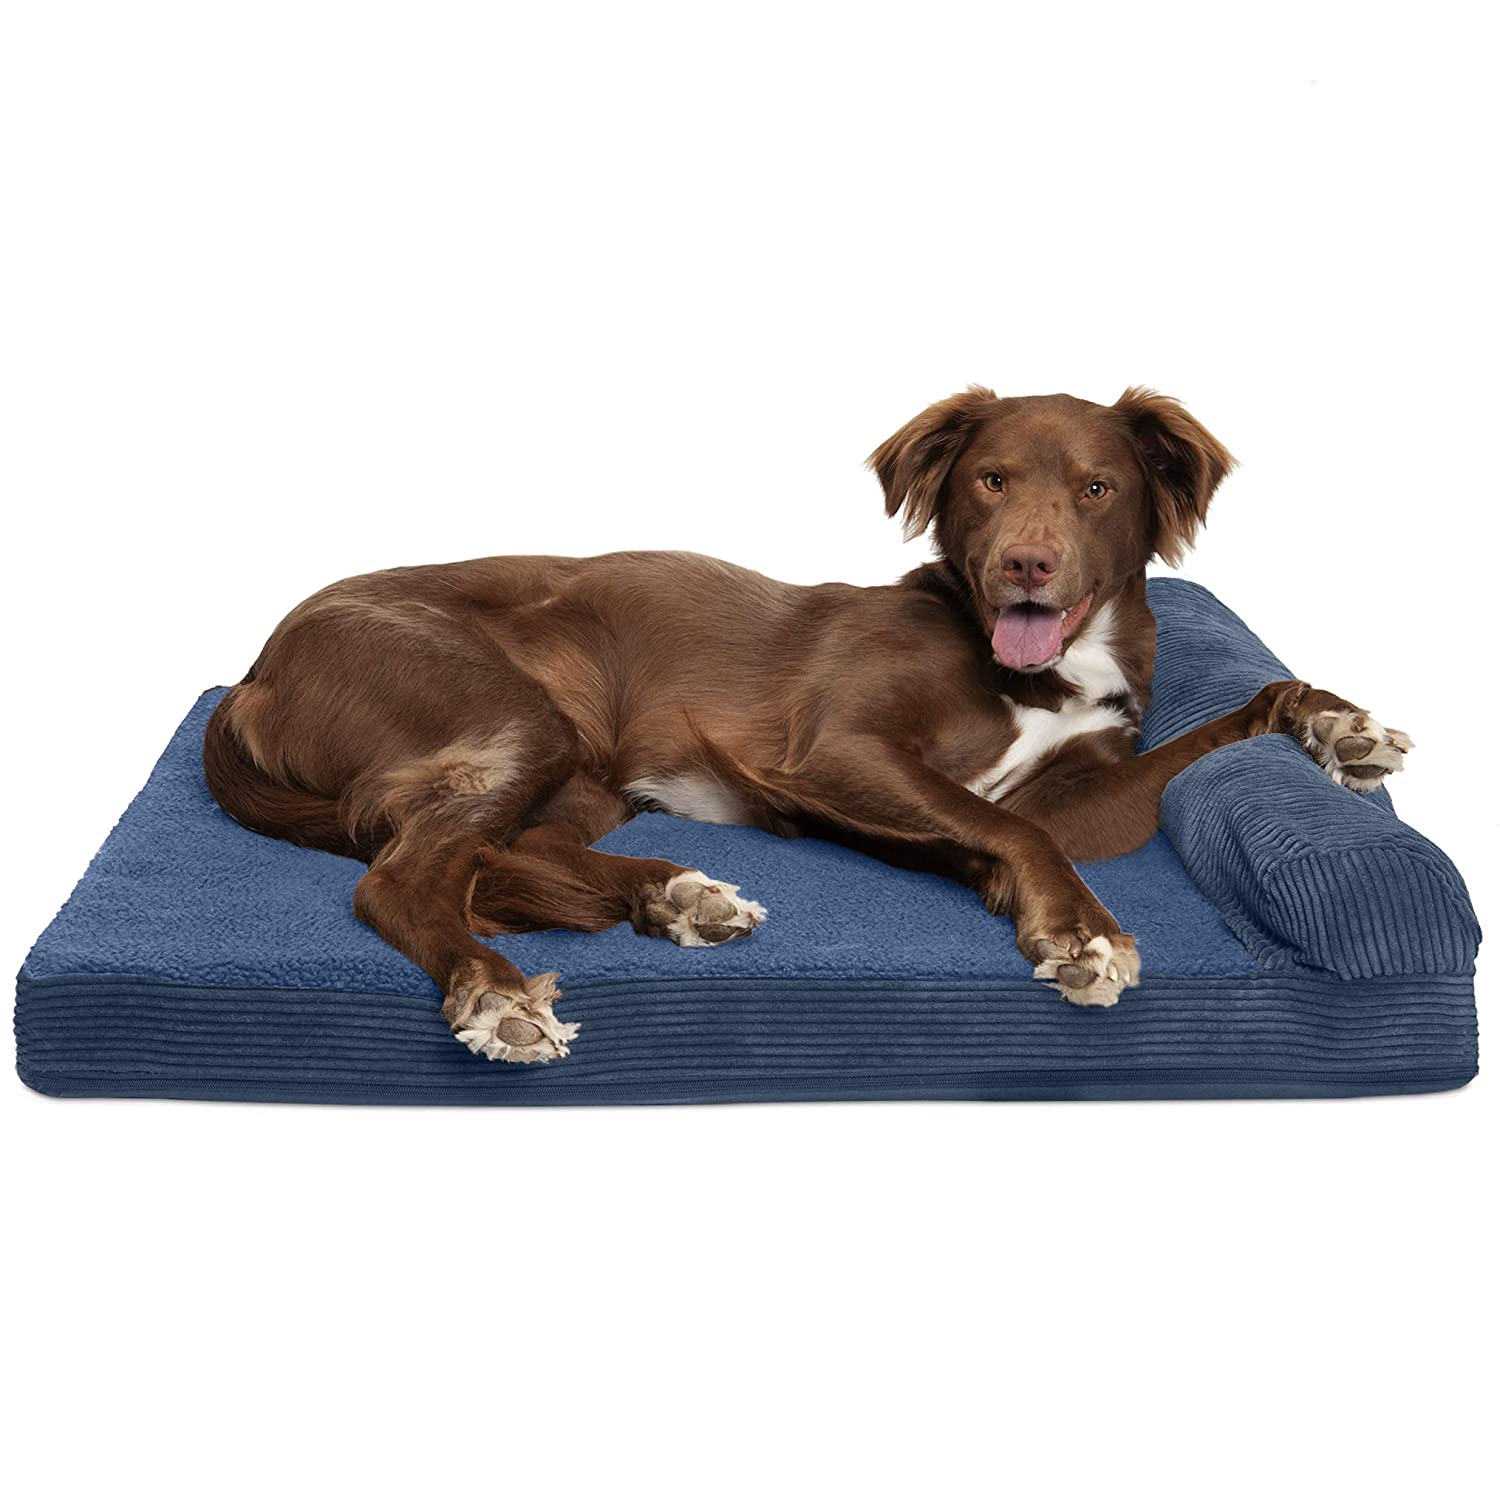 FurHaven Pet Dog Bed   Cooling Gel Memory Foam Orthopedic Faux Fleece & Corduroy Lounge Pet Bed for Dogs & Cats, Navy, Large